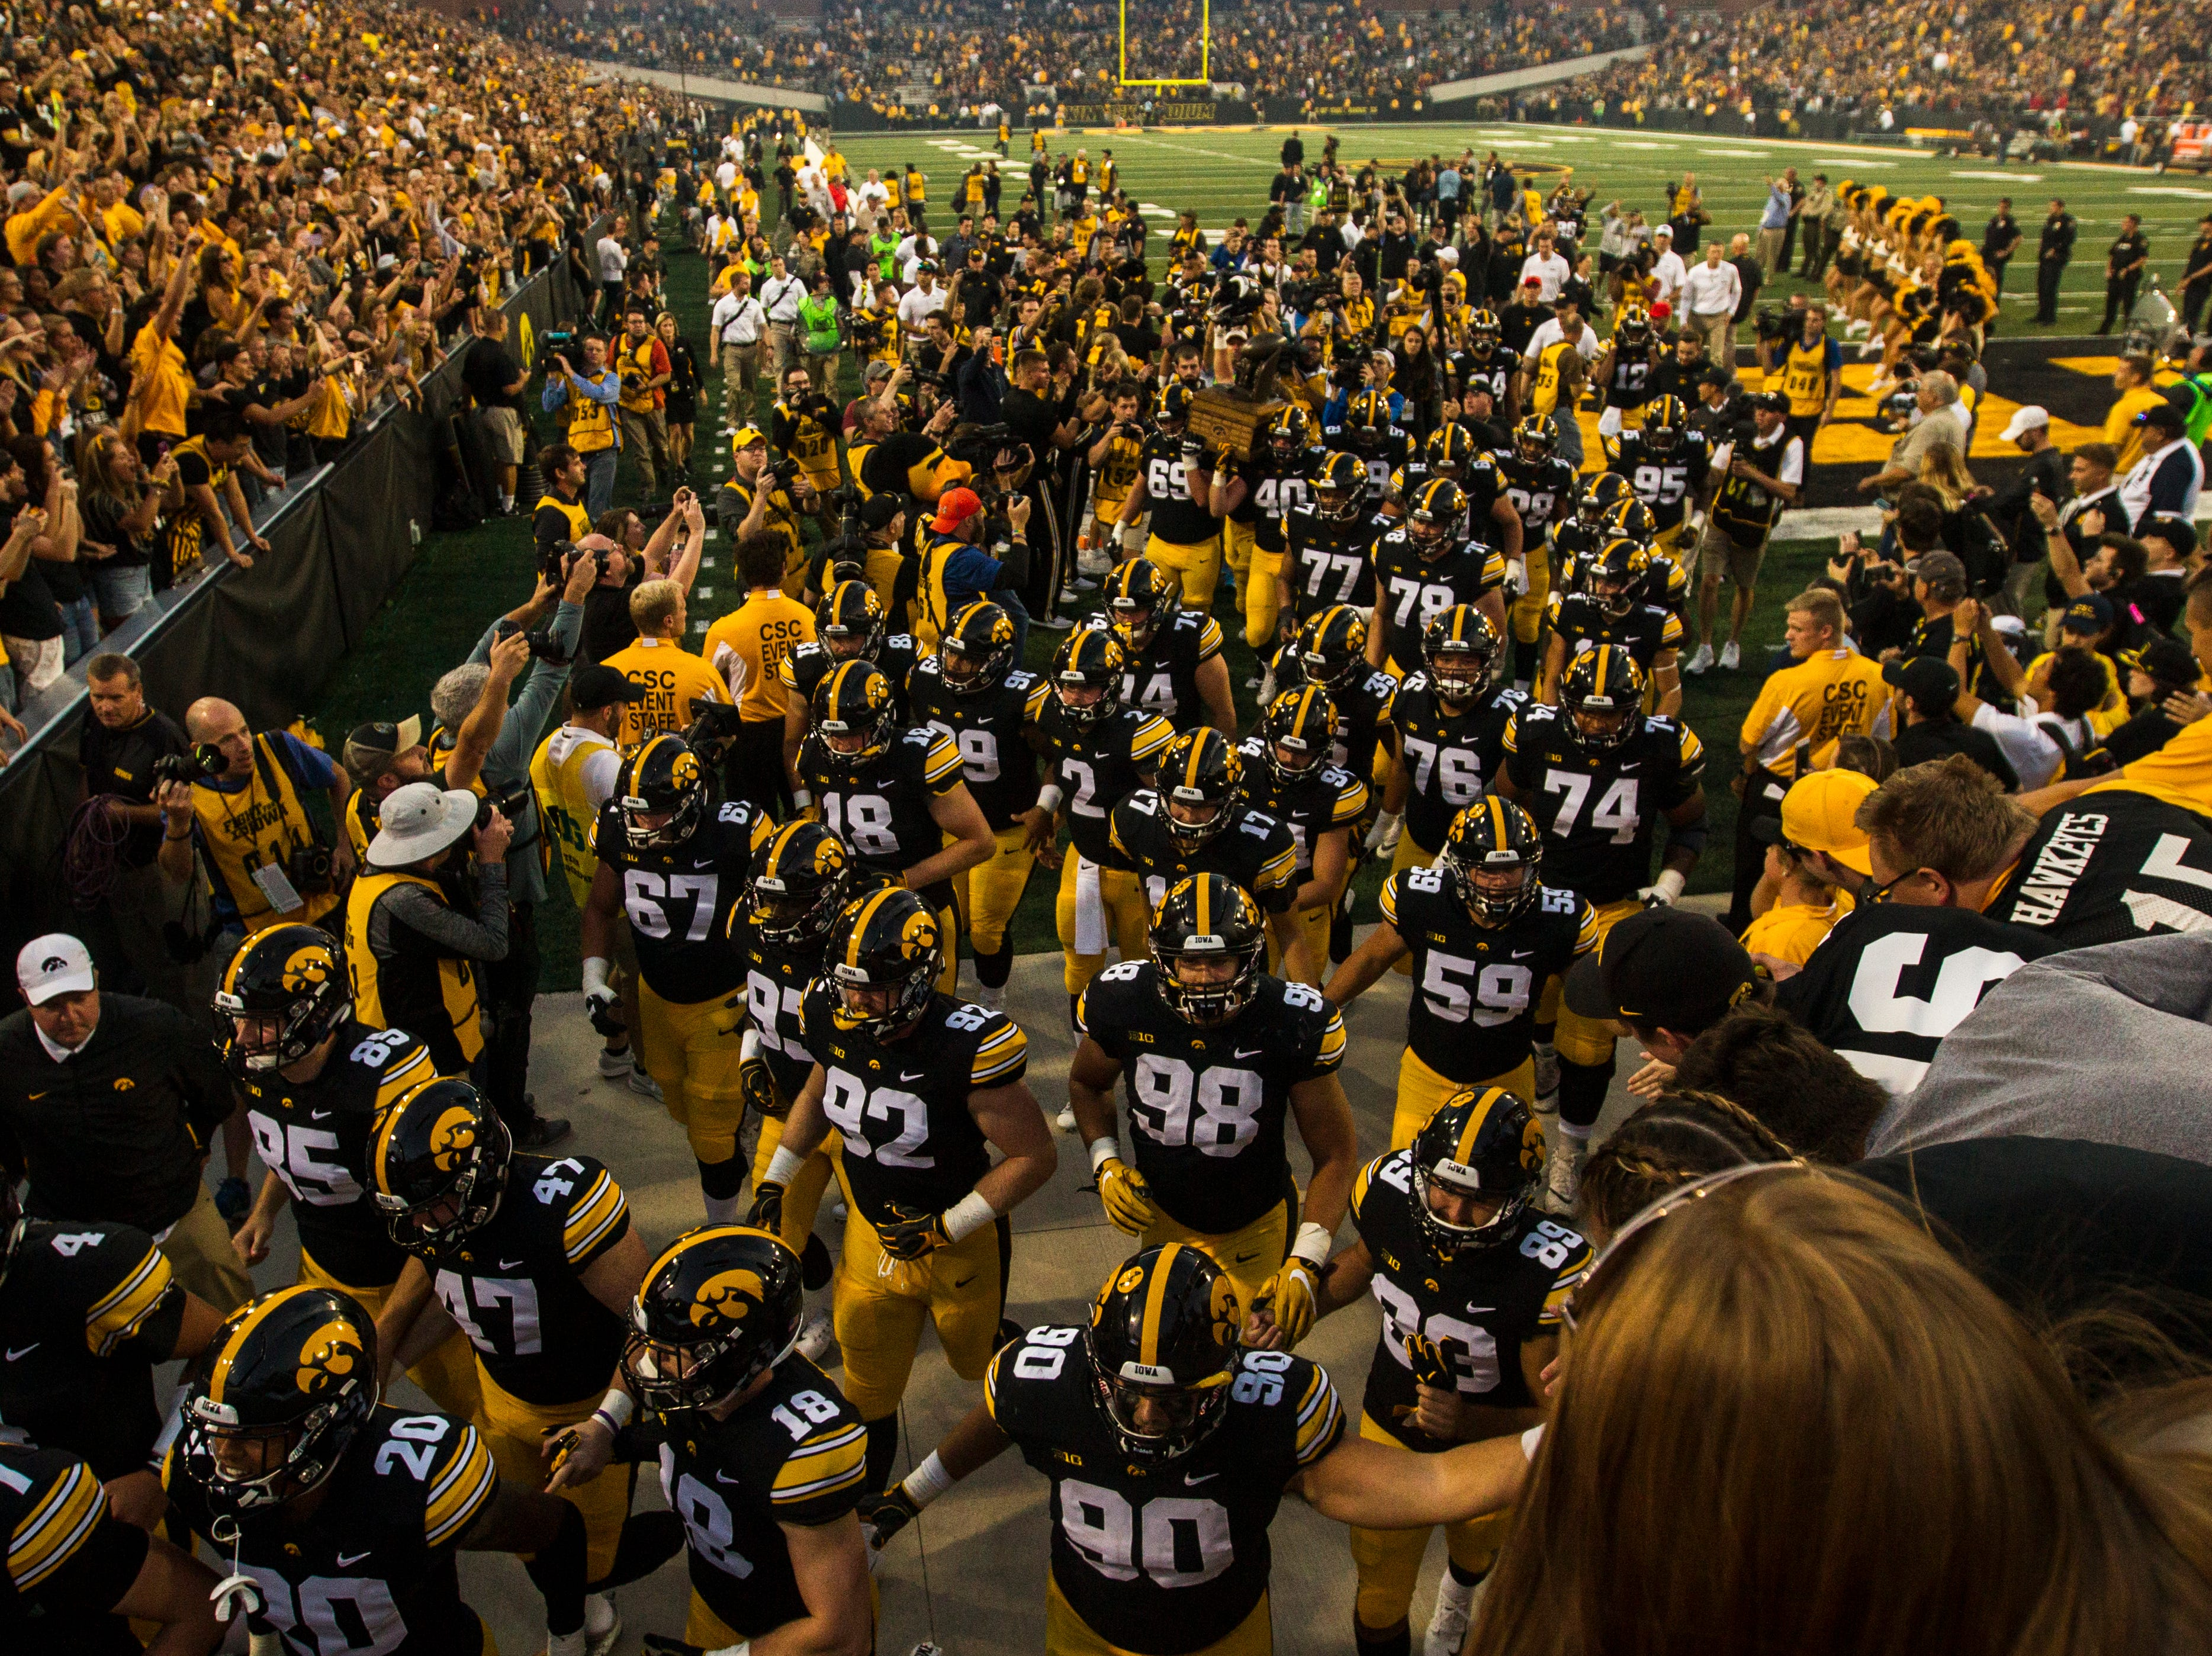 Members of the Iowa Hawkeyes run into their tunnel after the Cy-Hawk NCAA football game on Saturday, Sept. 8, 2018, at Kinnick Stadium in Iowa City. The Hawkeyes defeated the Cyclones, 13-3.